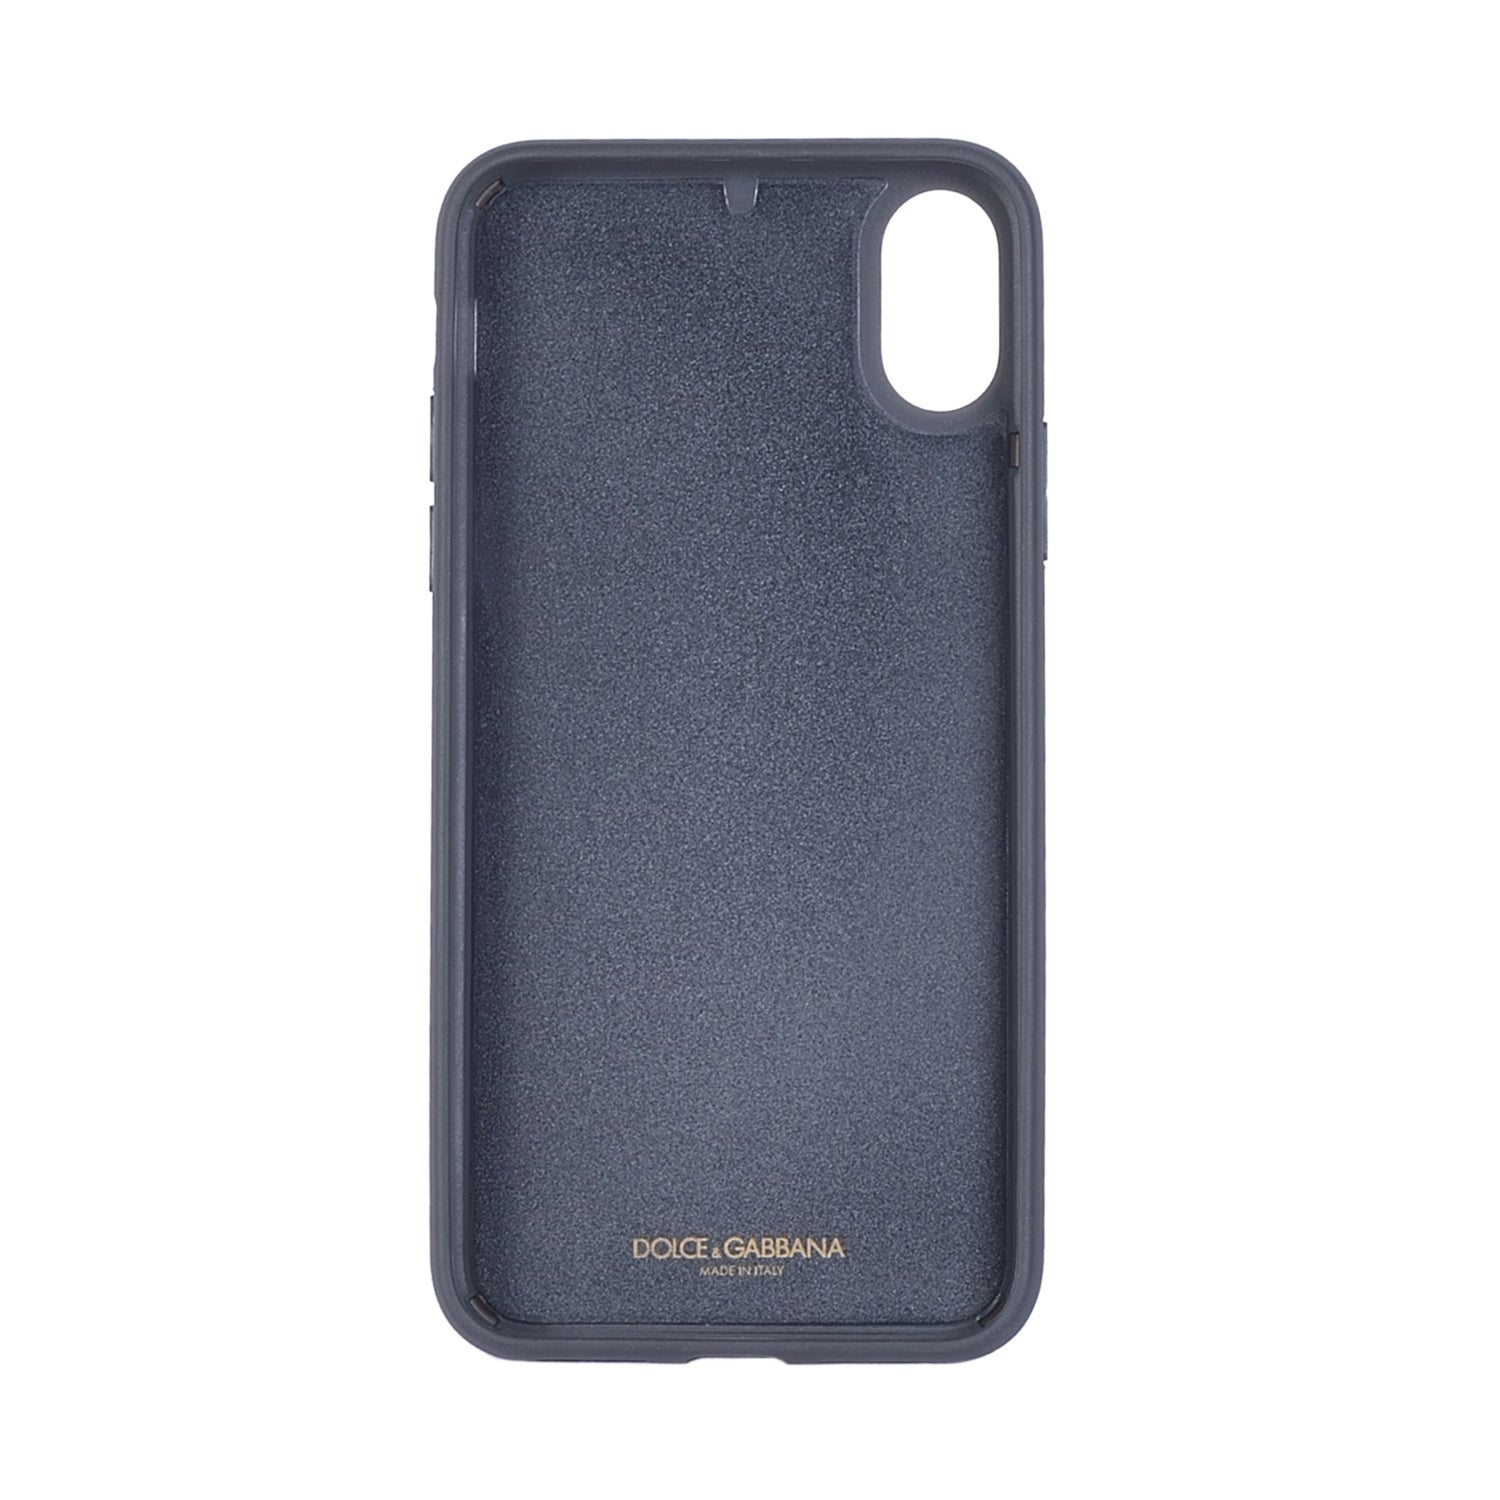 DOLCE & GABBANA Dauphine Calfskin iPhone X Cover with Crystal Logo